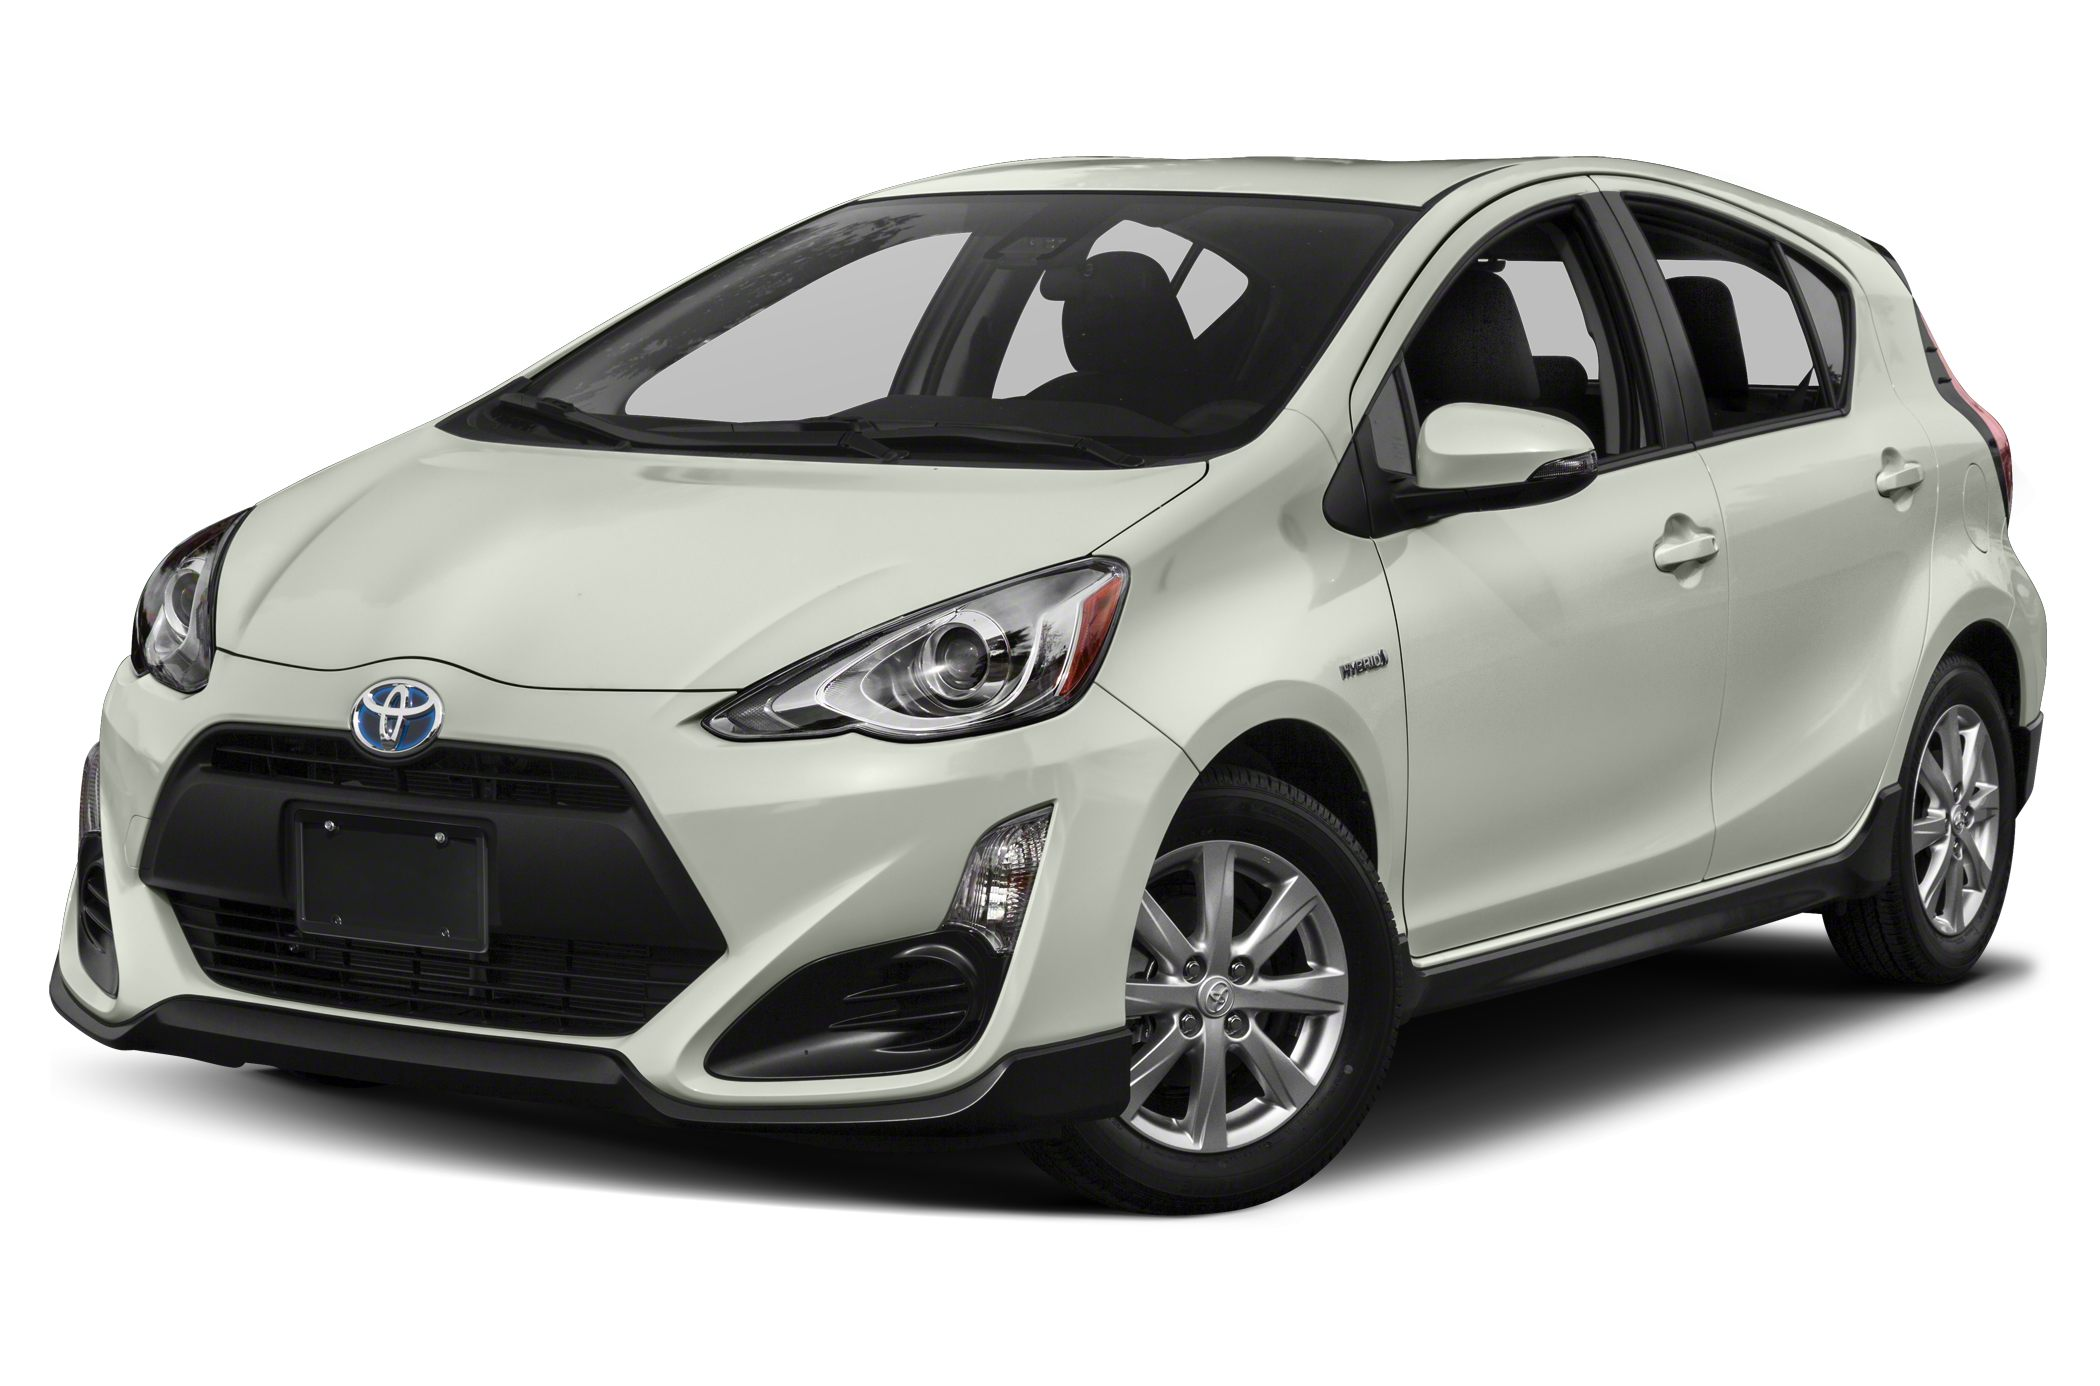 2016 toyota prius c gets two tone persona series autoblog. Black Bedroom Furniture Sets. Home Design Ideas